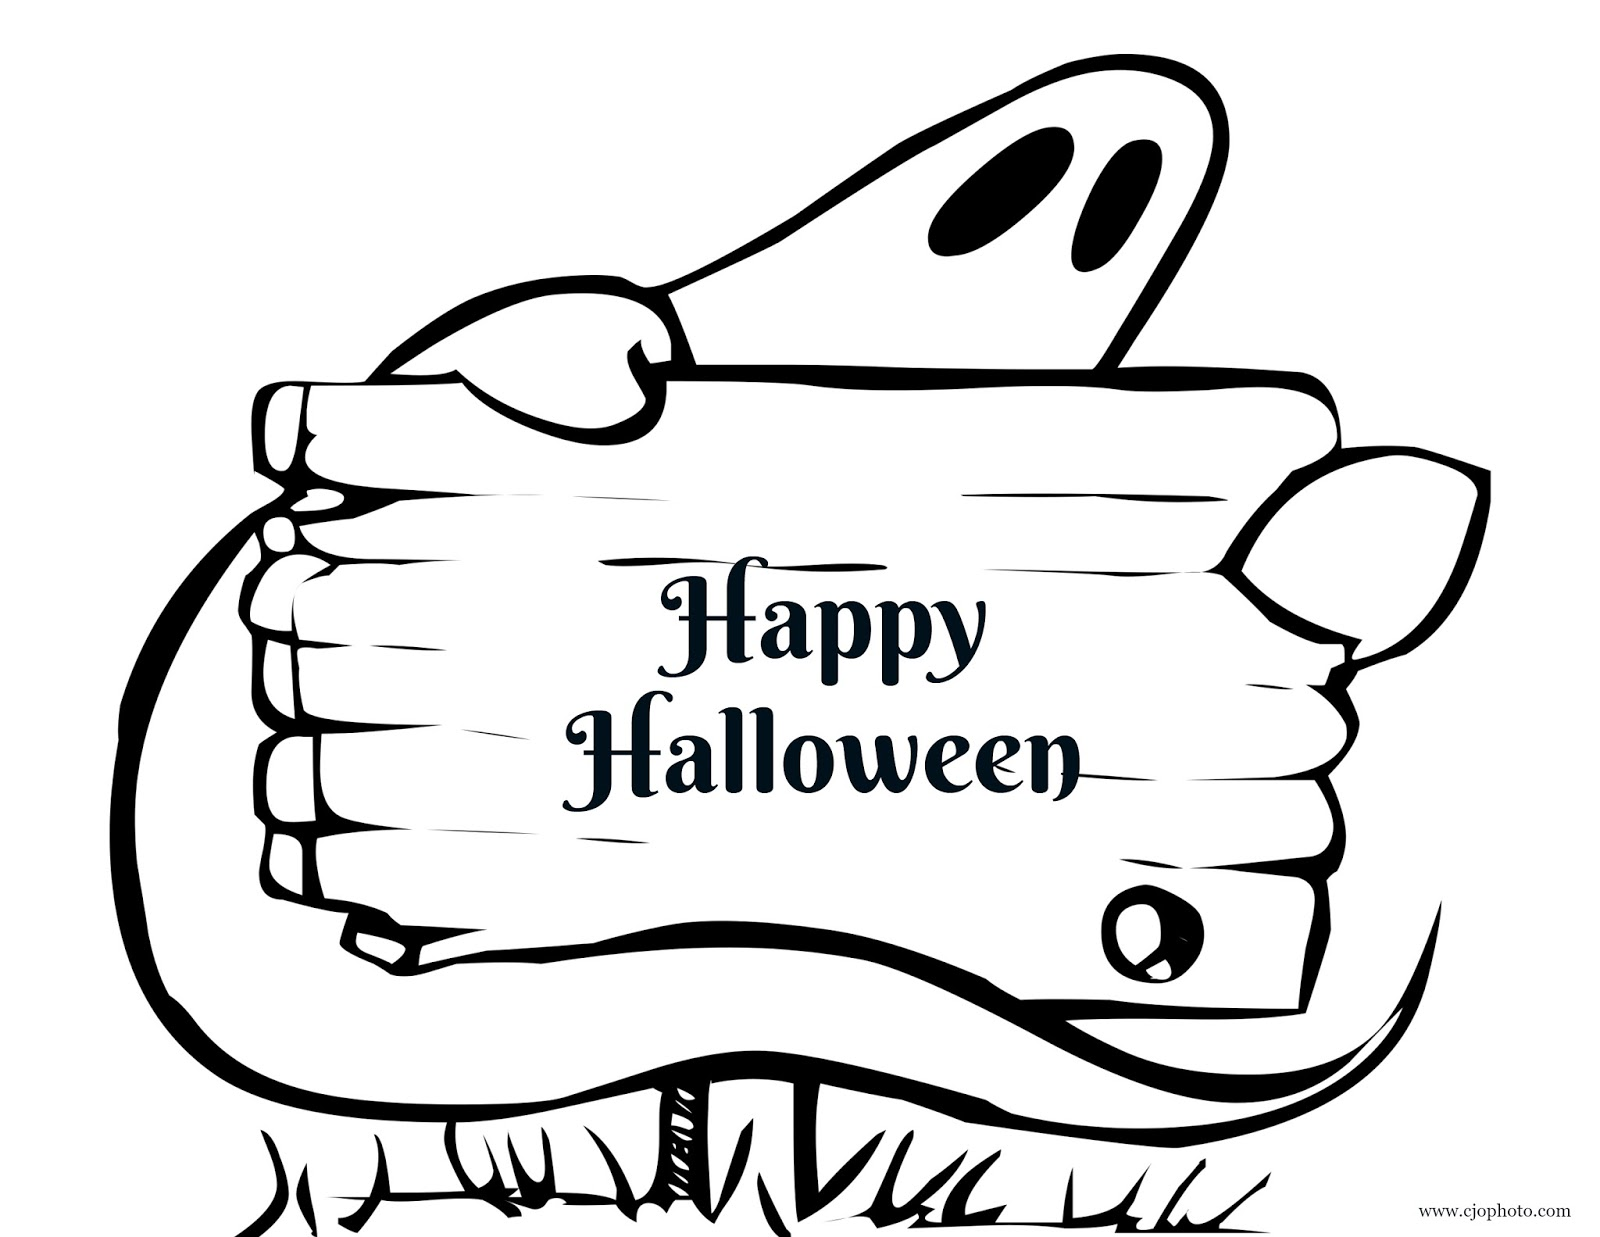 CJO Photo: Halloween Coloring Page: Happy Halloween Ghost